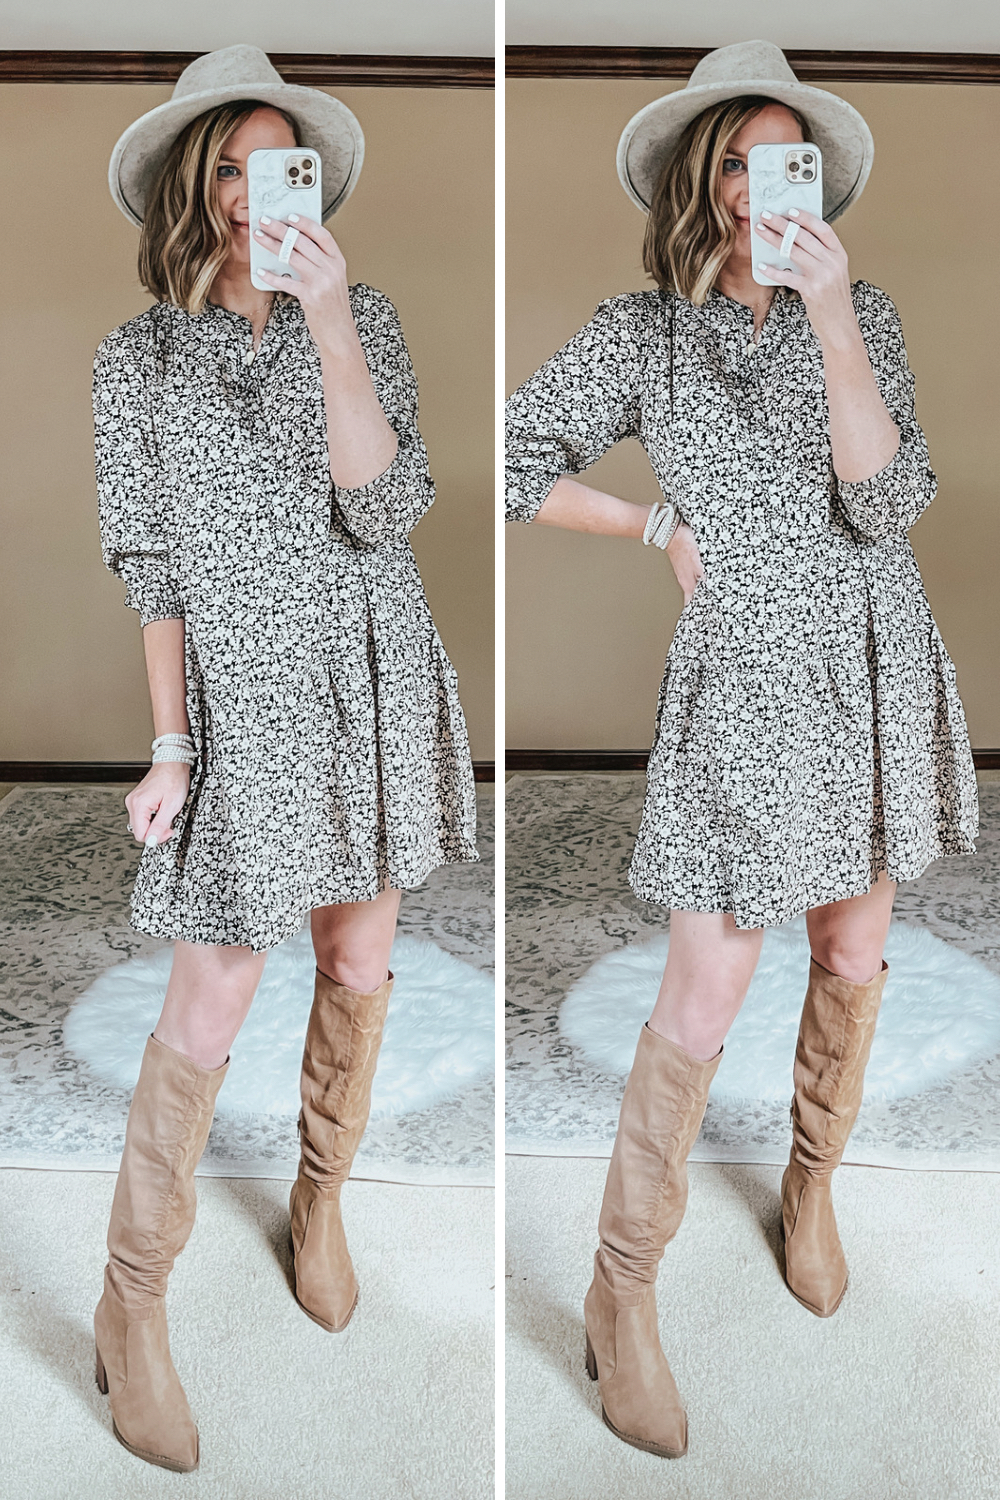 Walmart Fall Outfits Everything Under $30, fall floral dress